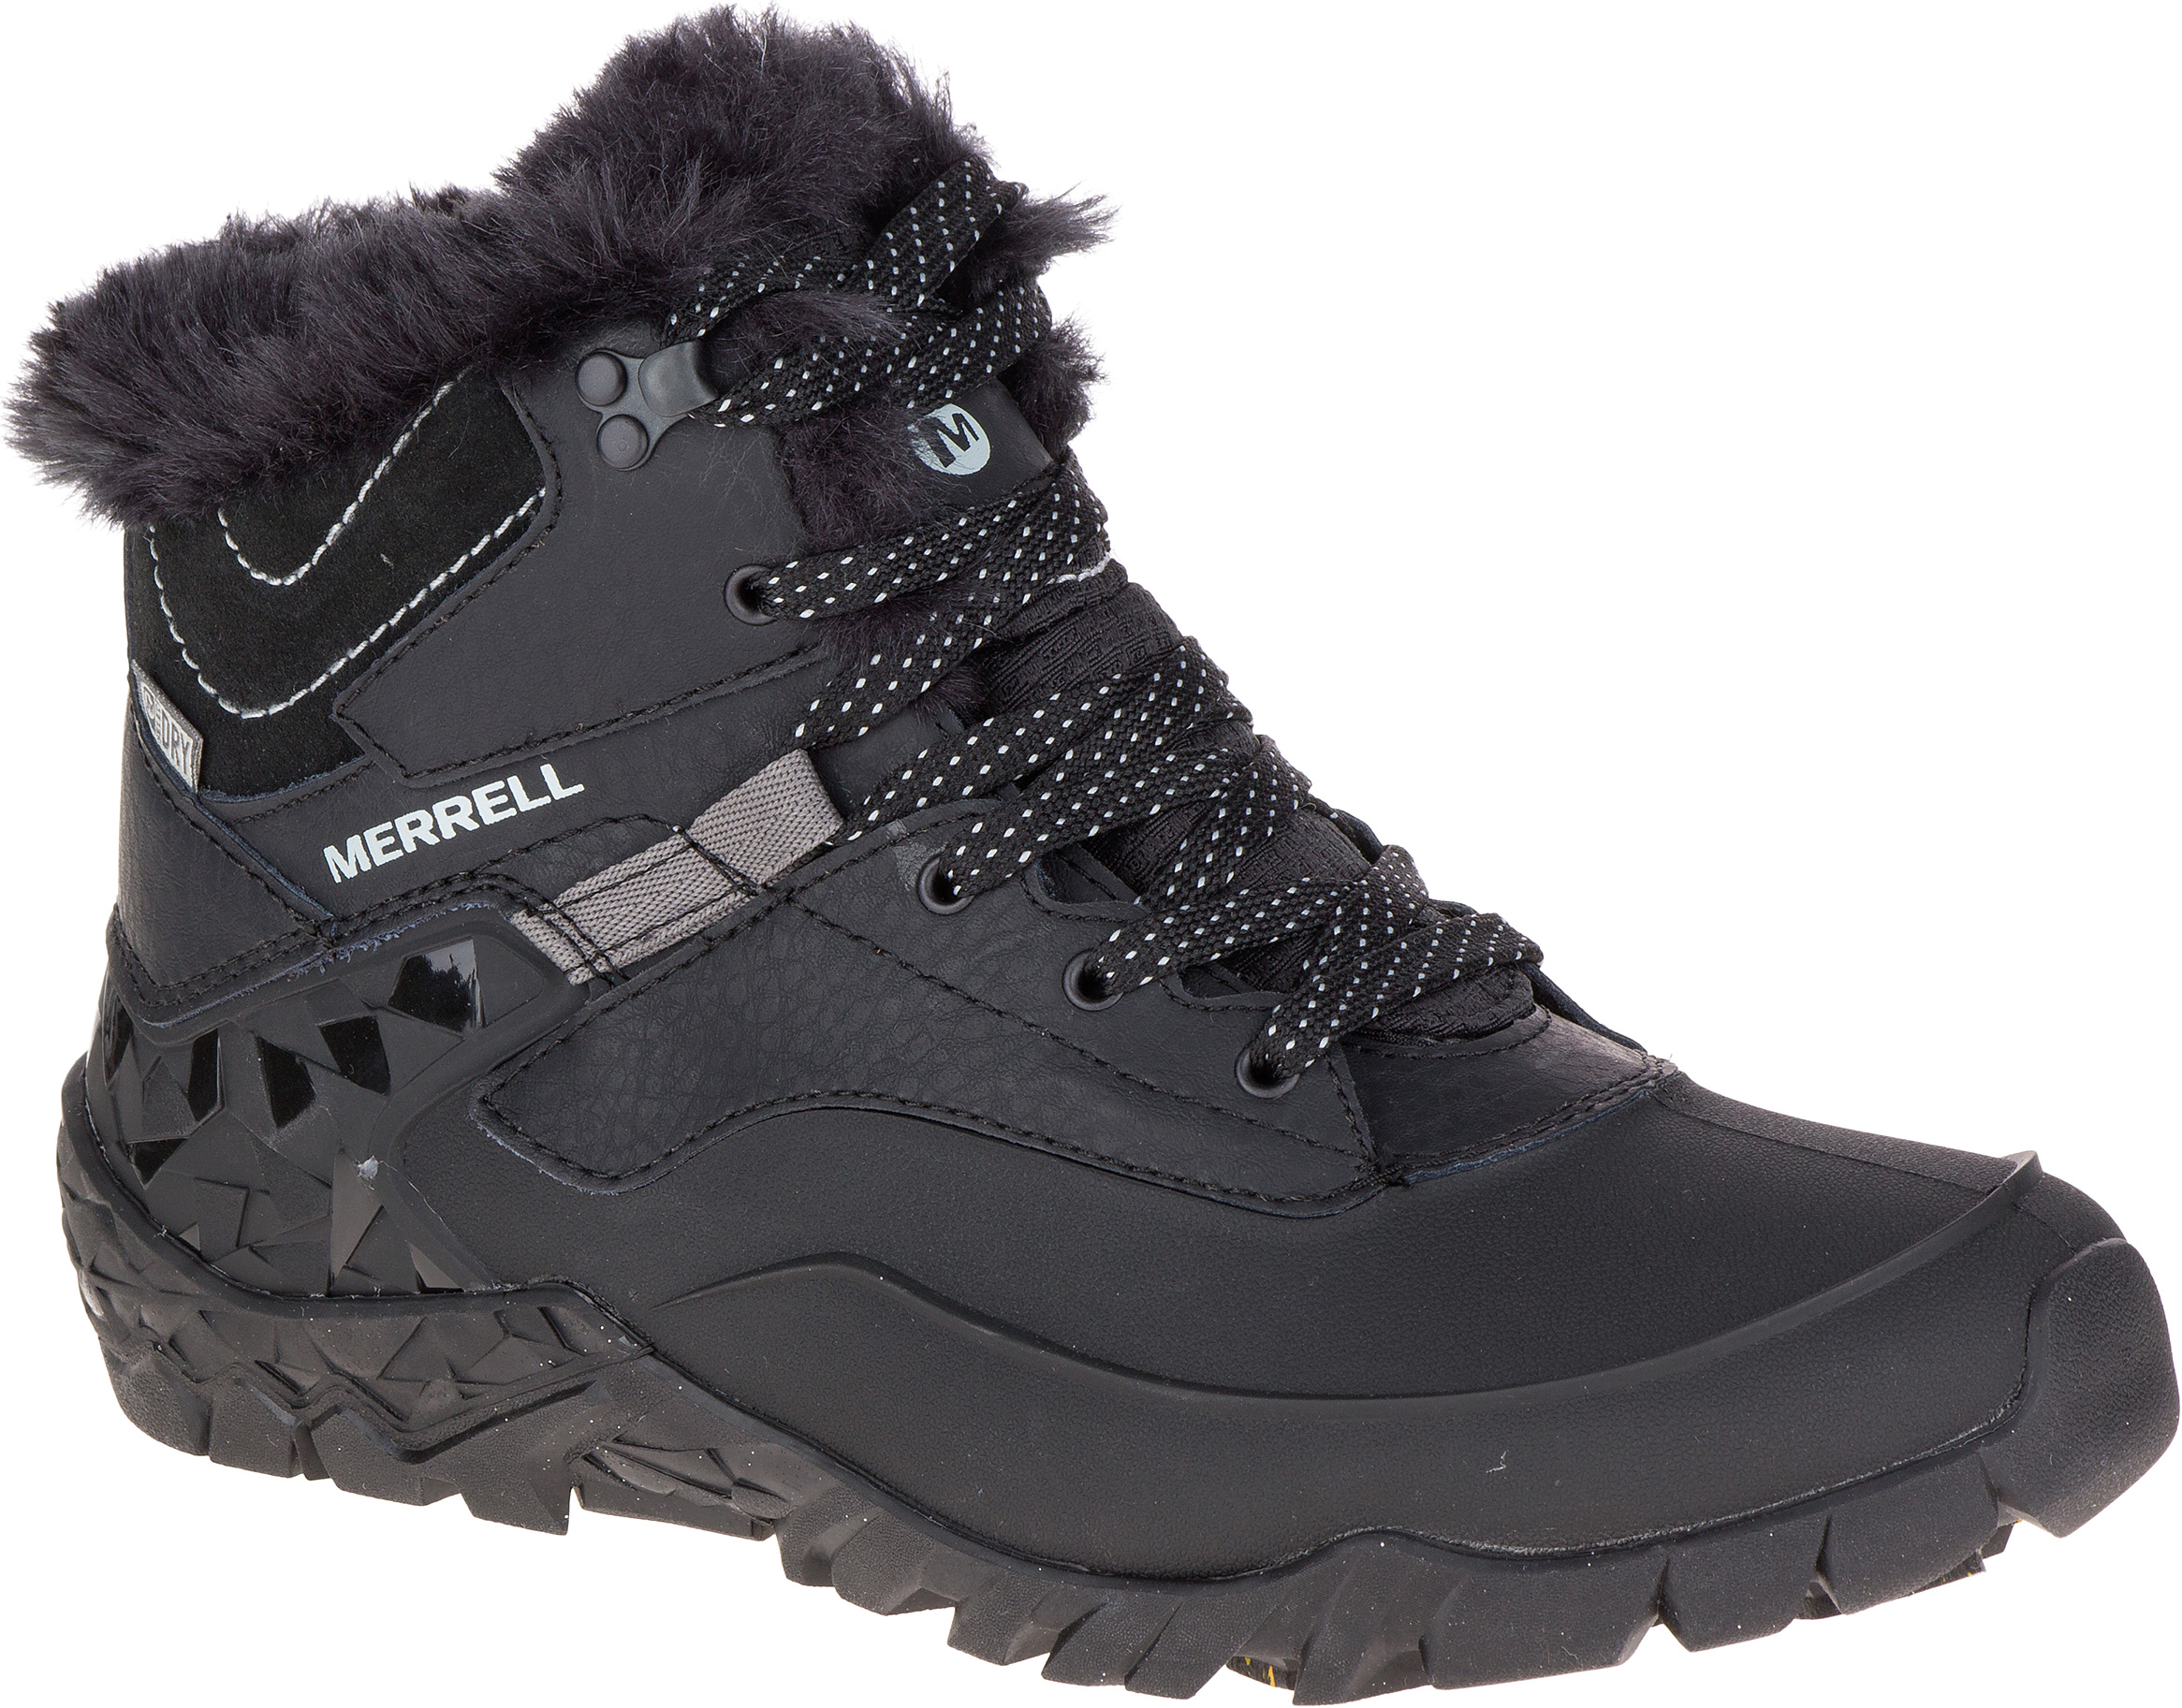 Merrell Aurora 6 Ice Waterproof 37216 EUR 39